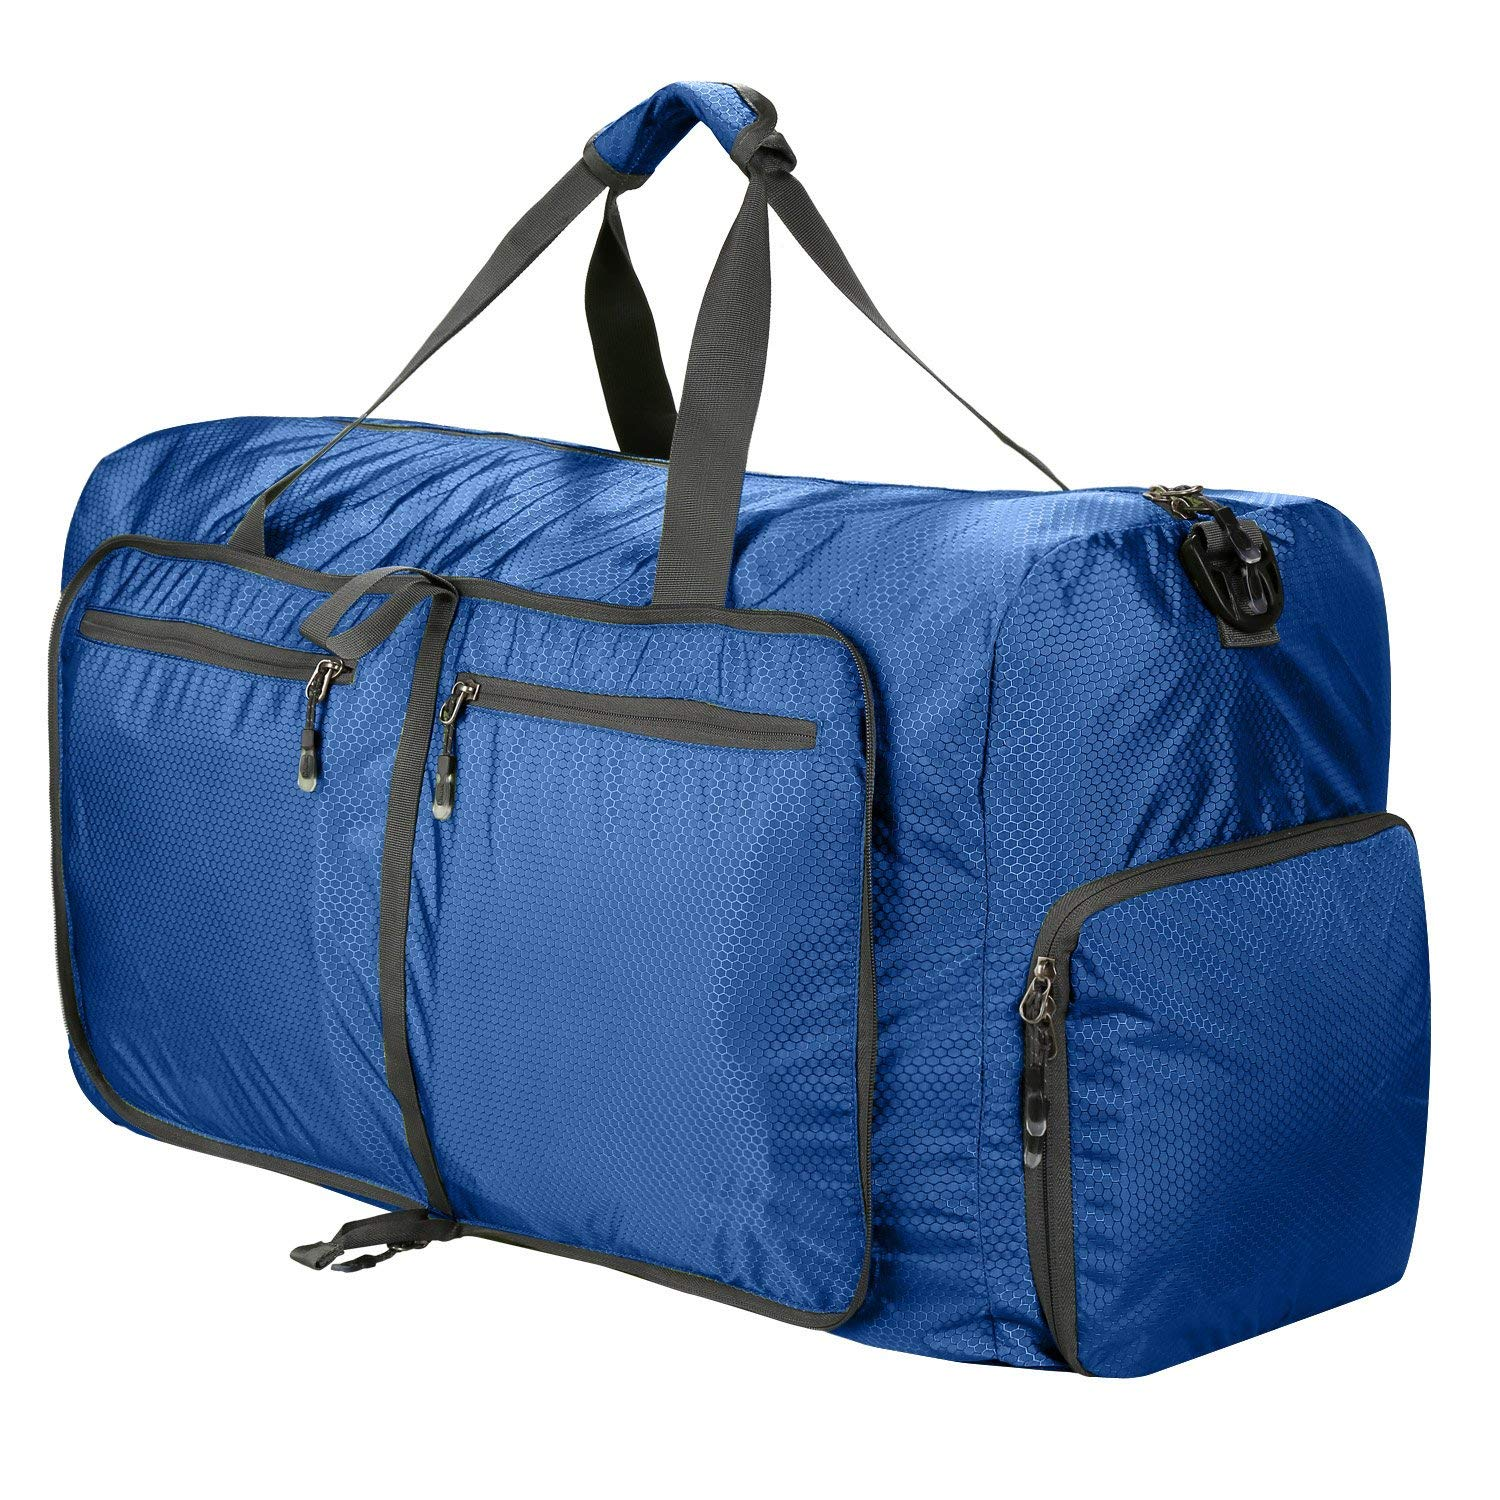 80L Packable Travel Duffle Bag, Large Lightweight Luggage Duffel (Blue)